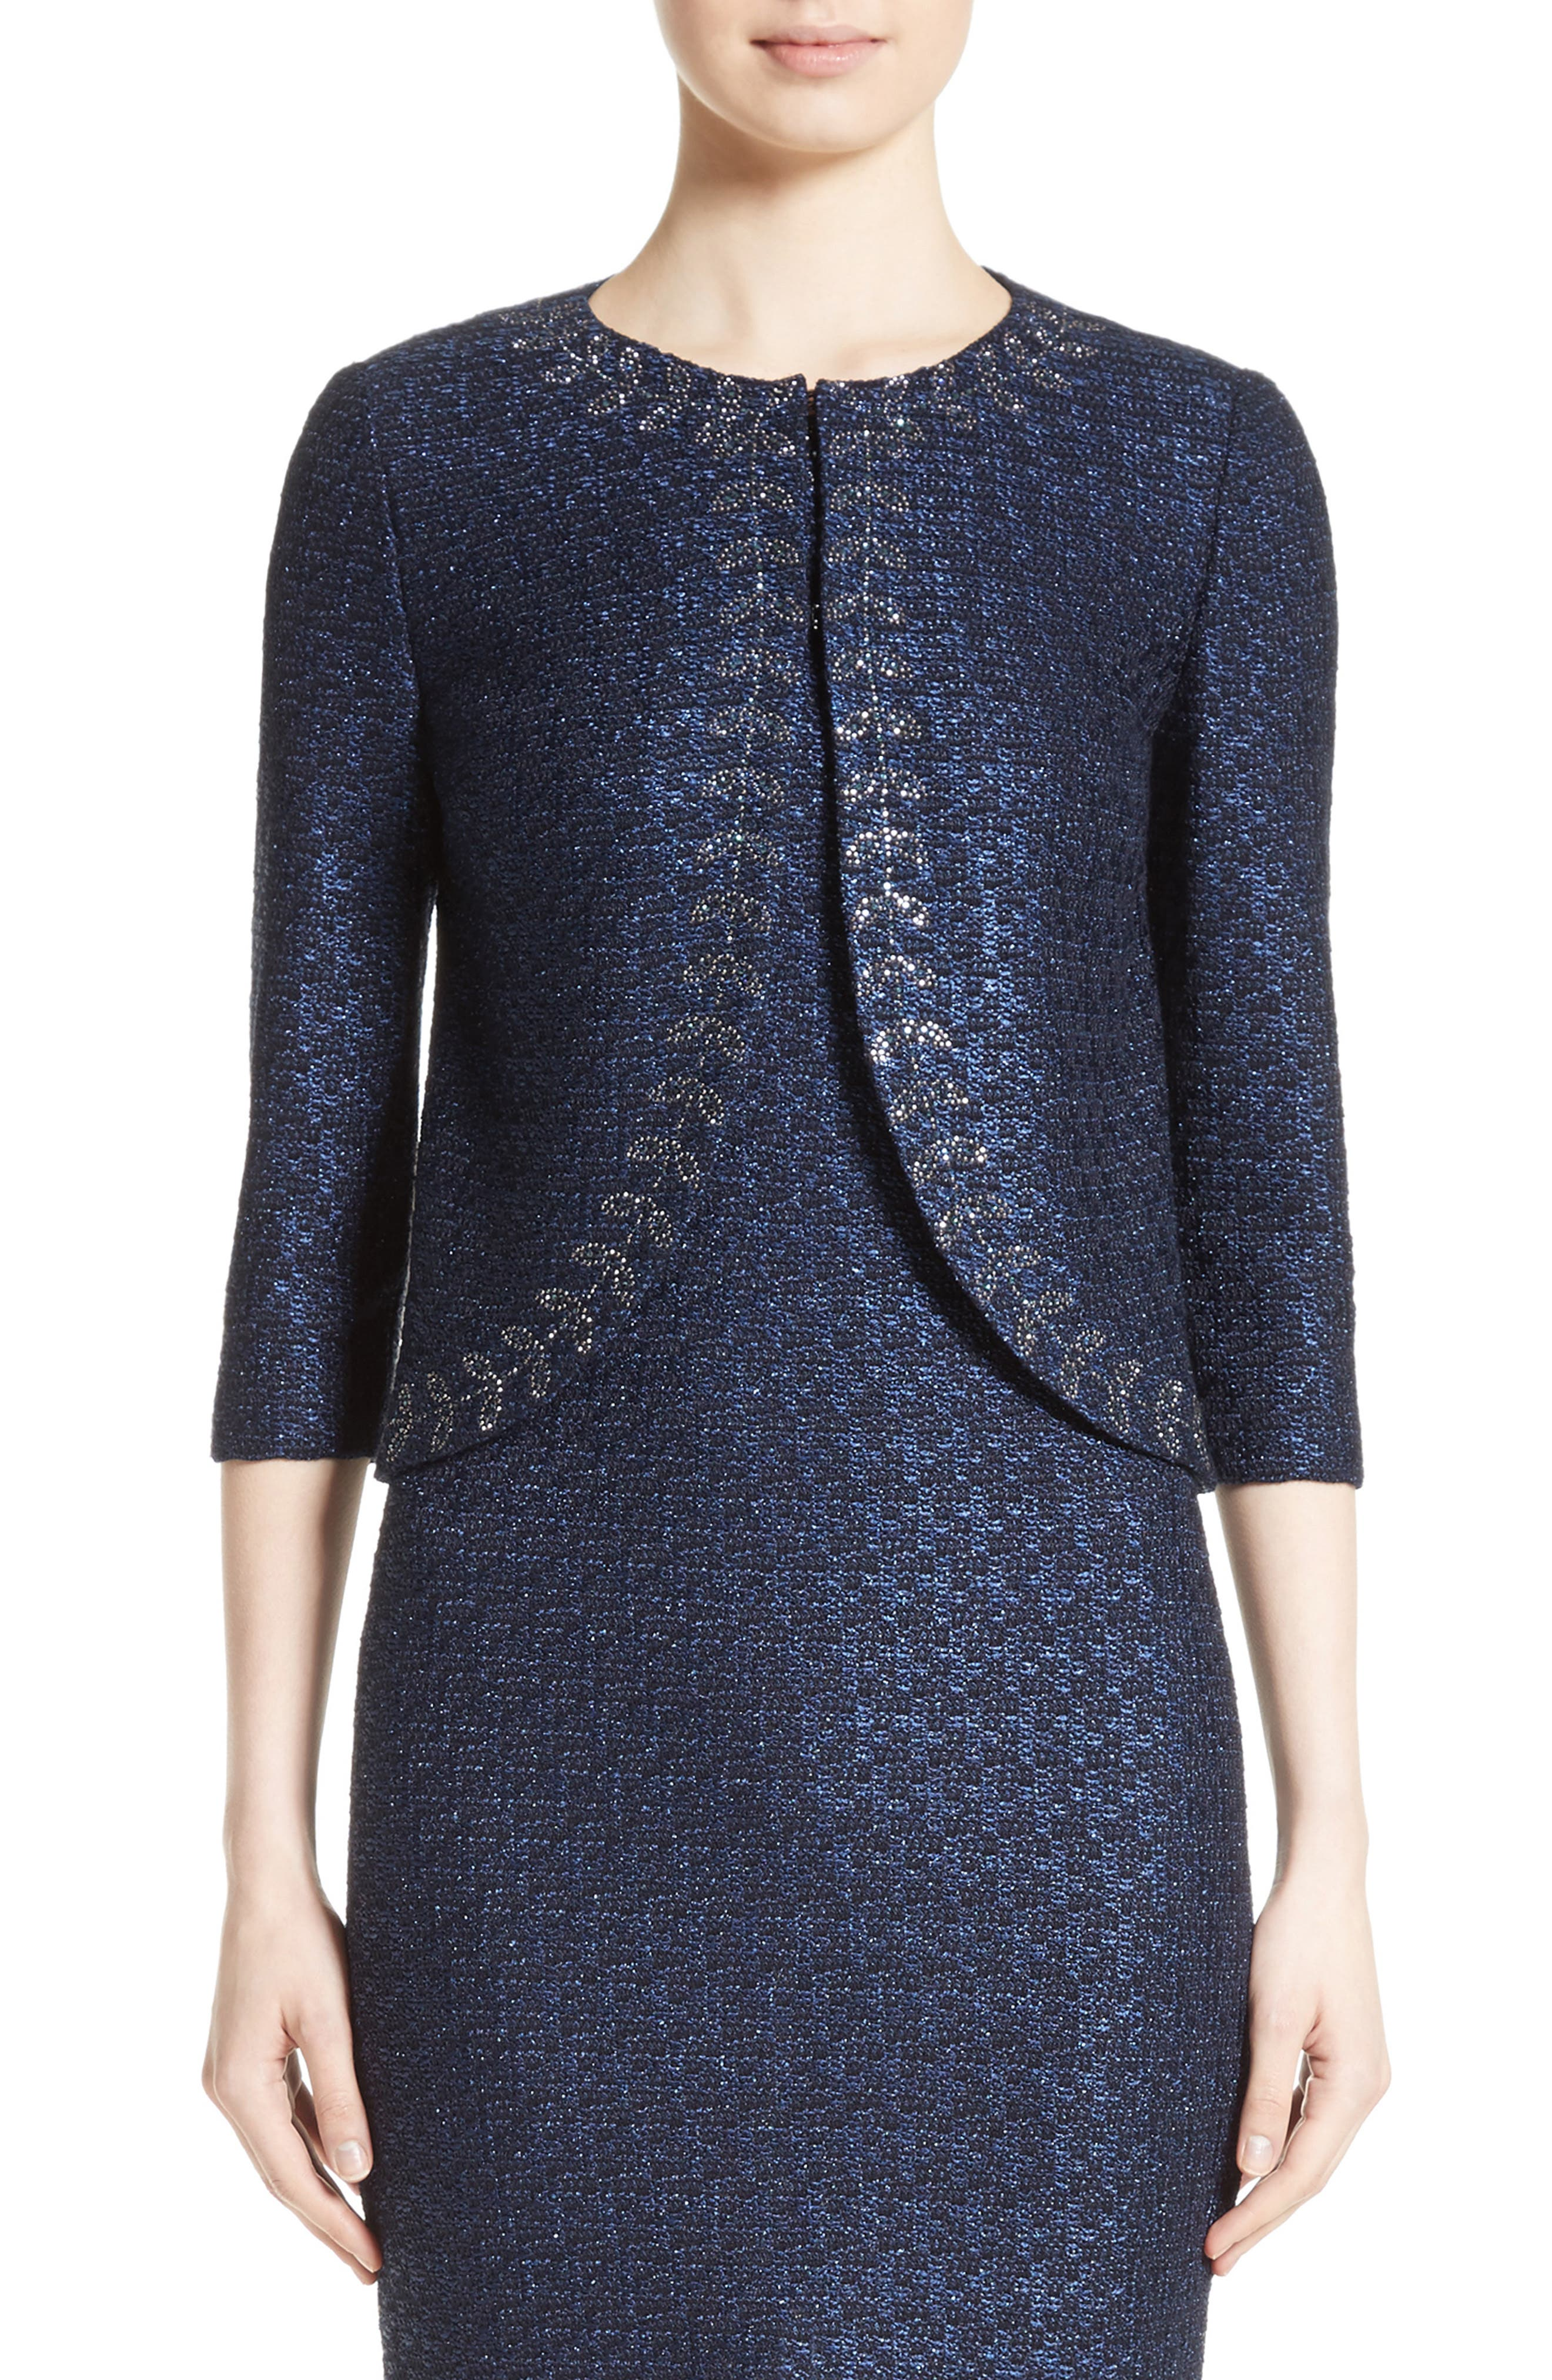 ST. JOHN COLLECTION Jiya Sparkle Knit Jacket